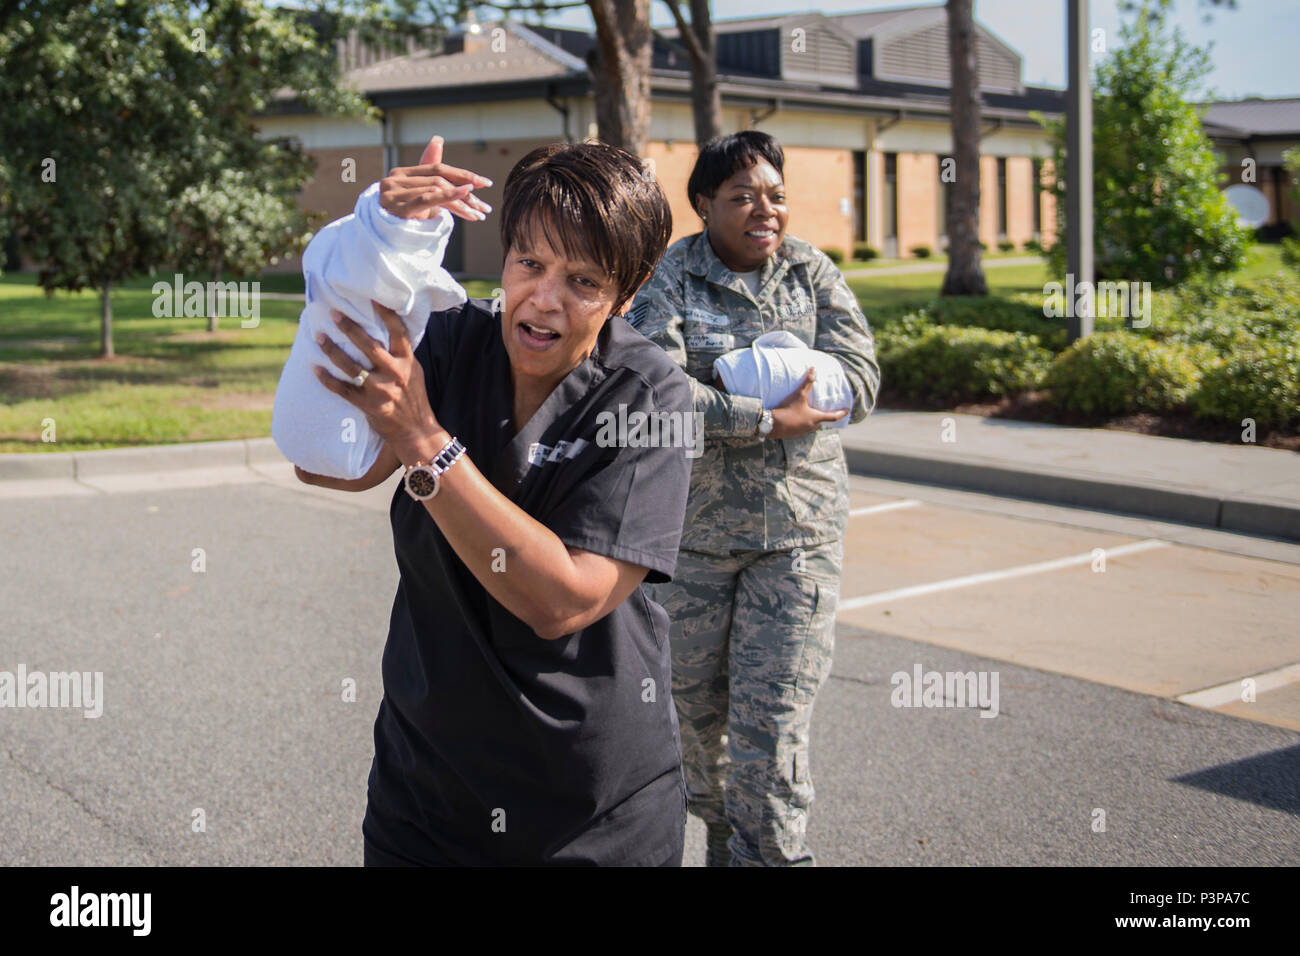 Shelia Davis, 23d Medical Operations Squadron women's health nurse, and U.S. Air Force Tech. Sgt. Ruth Celestine, 23d Medical Support Squadron NCO in charge of medical evaluation boards and patient travel, evacuate a building while also simulating injuries during an active-shooter exercise, July 20, 2016, at Moody Air Force Base, Ga. The 23d Security Forces Squadron responded and simulated neutralizing the threat and securing the area for simulated injured personnel to evacuate. (U.S. Air Force photo by Airman Daniel Snider) - Stock Image